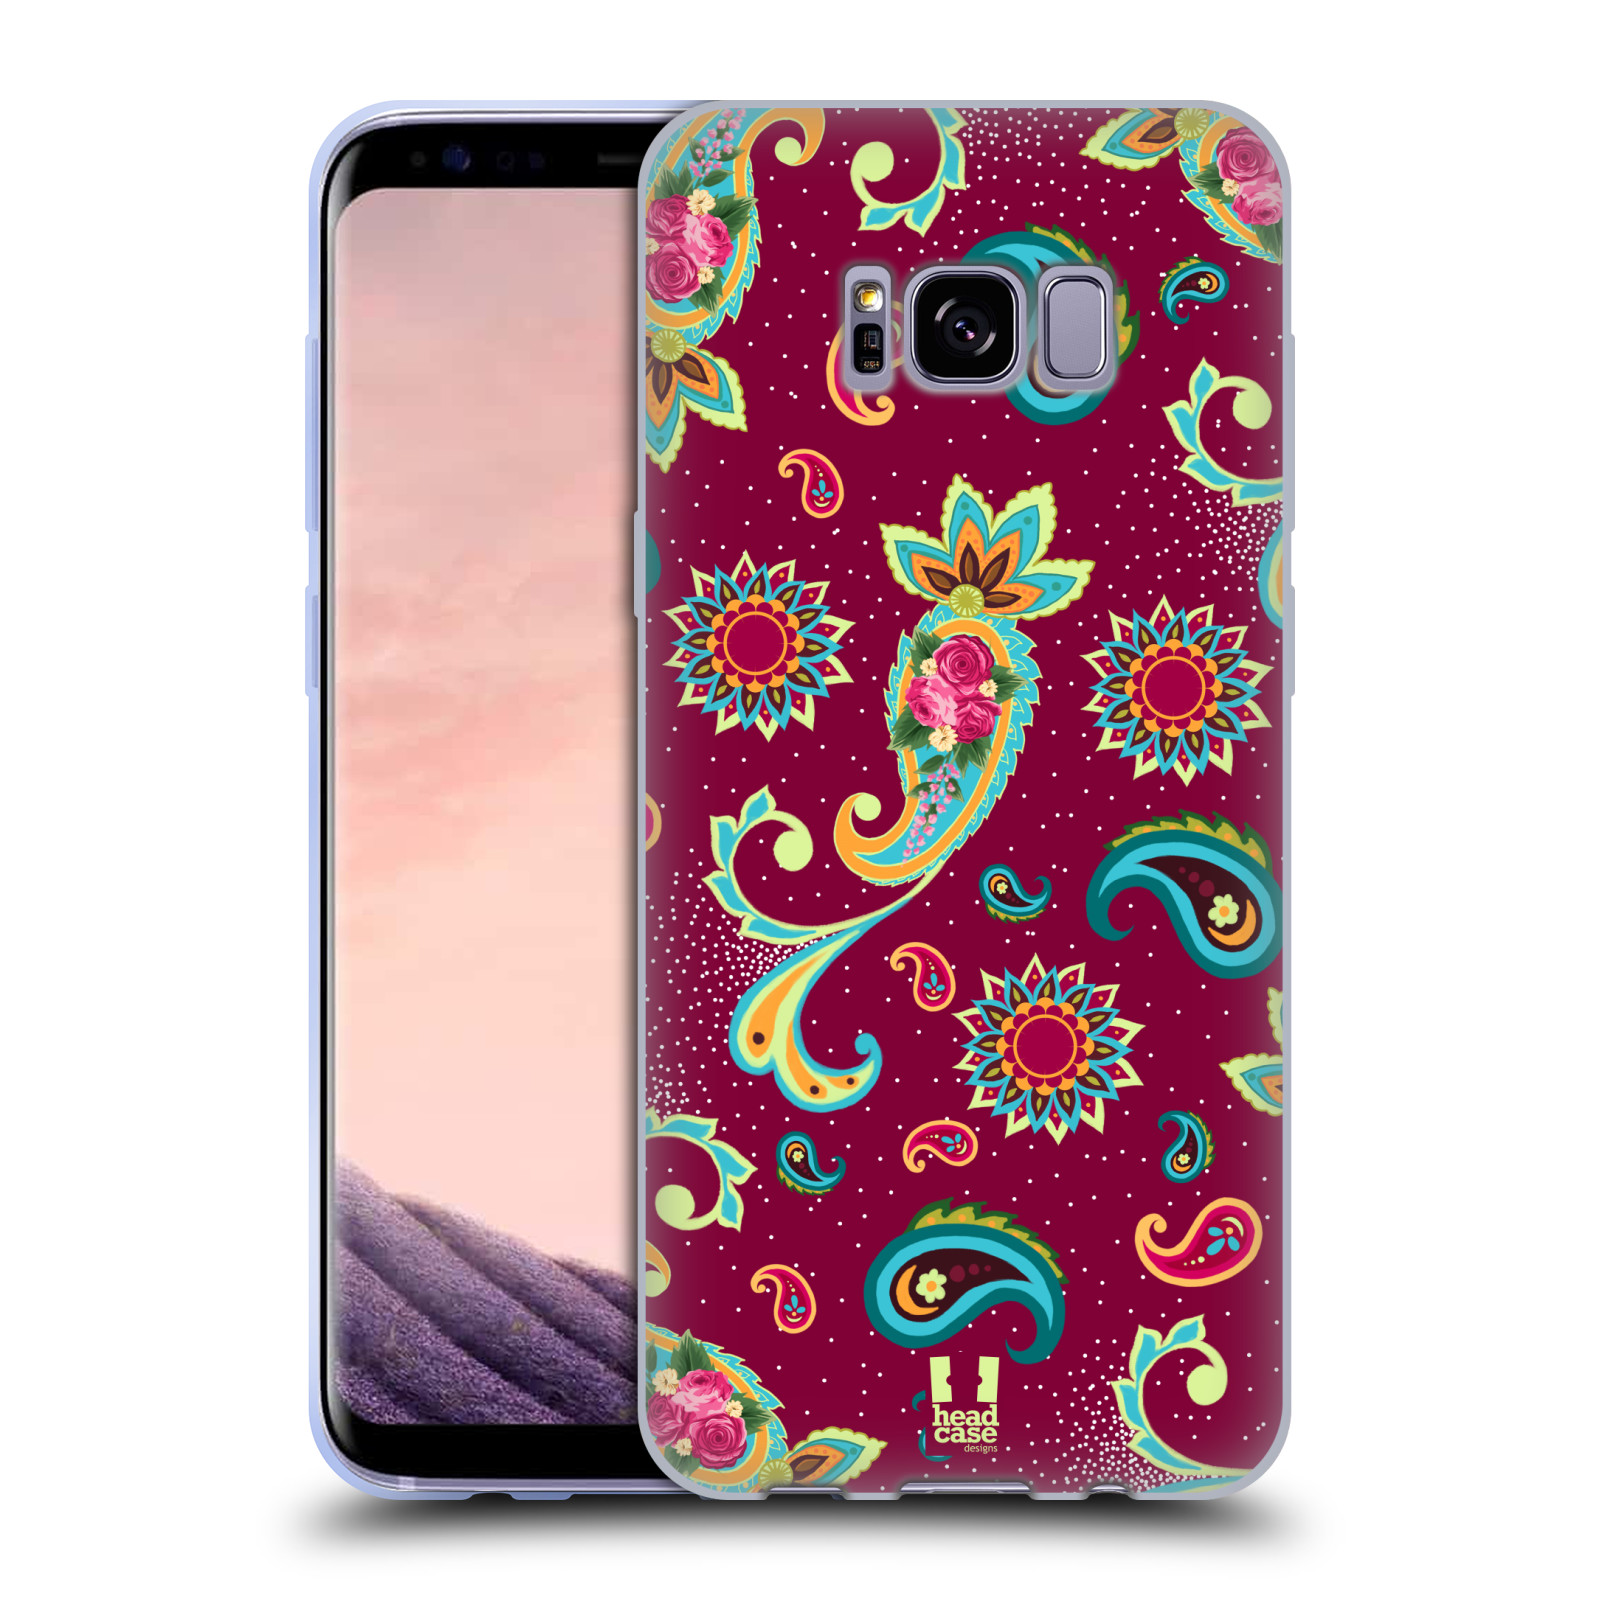 HEAD-CASE-DESIGNS-CHIC-PAISLEY-SOFT-GEL-CASE-FOR-SAMSUNG-GALAXY-S8-S8-PLUS